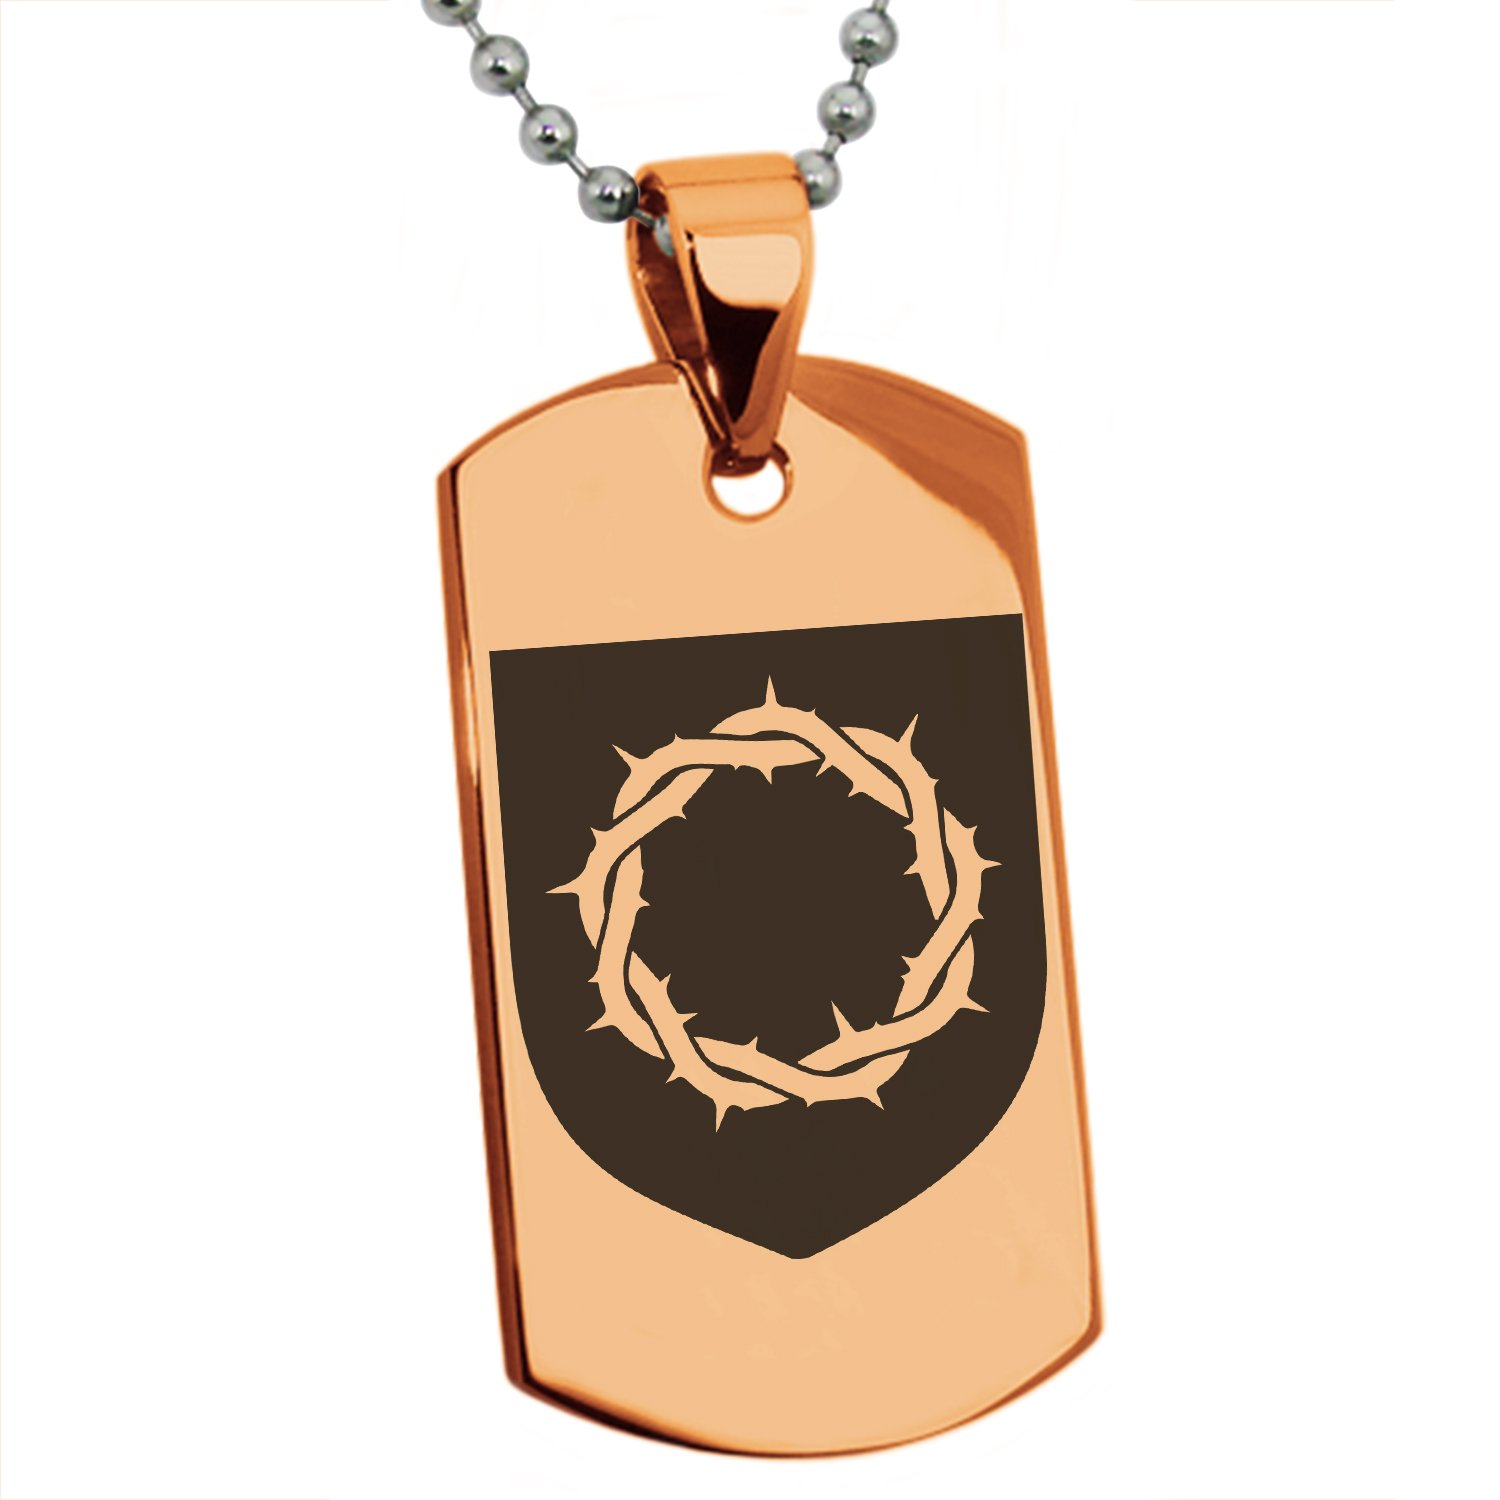 Tioneer Rose Gold Stainless Steel Crown of Thorns Adversity Coat of Arms Shield Symbol Engraved Dog Tag Pendant Necklace